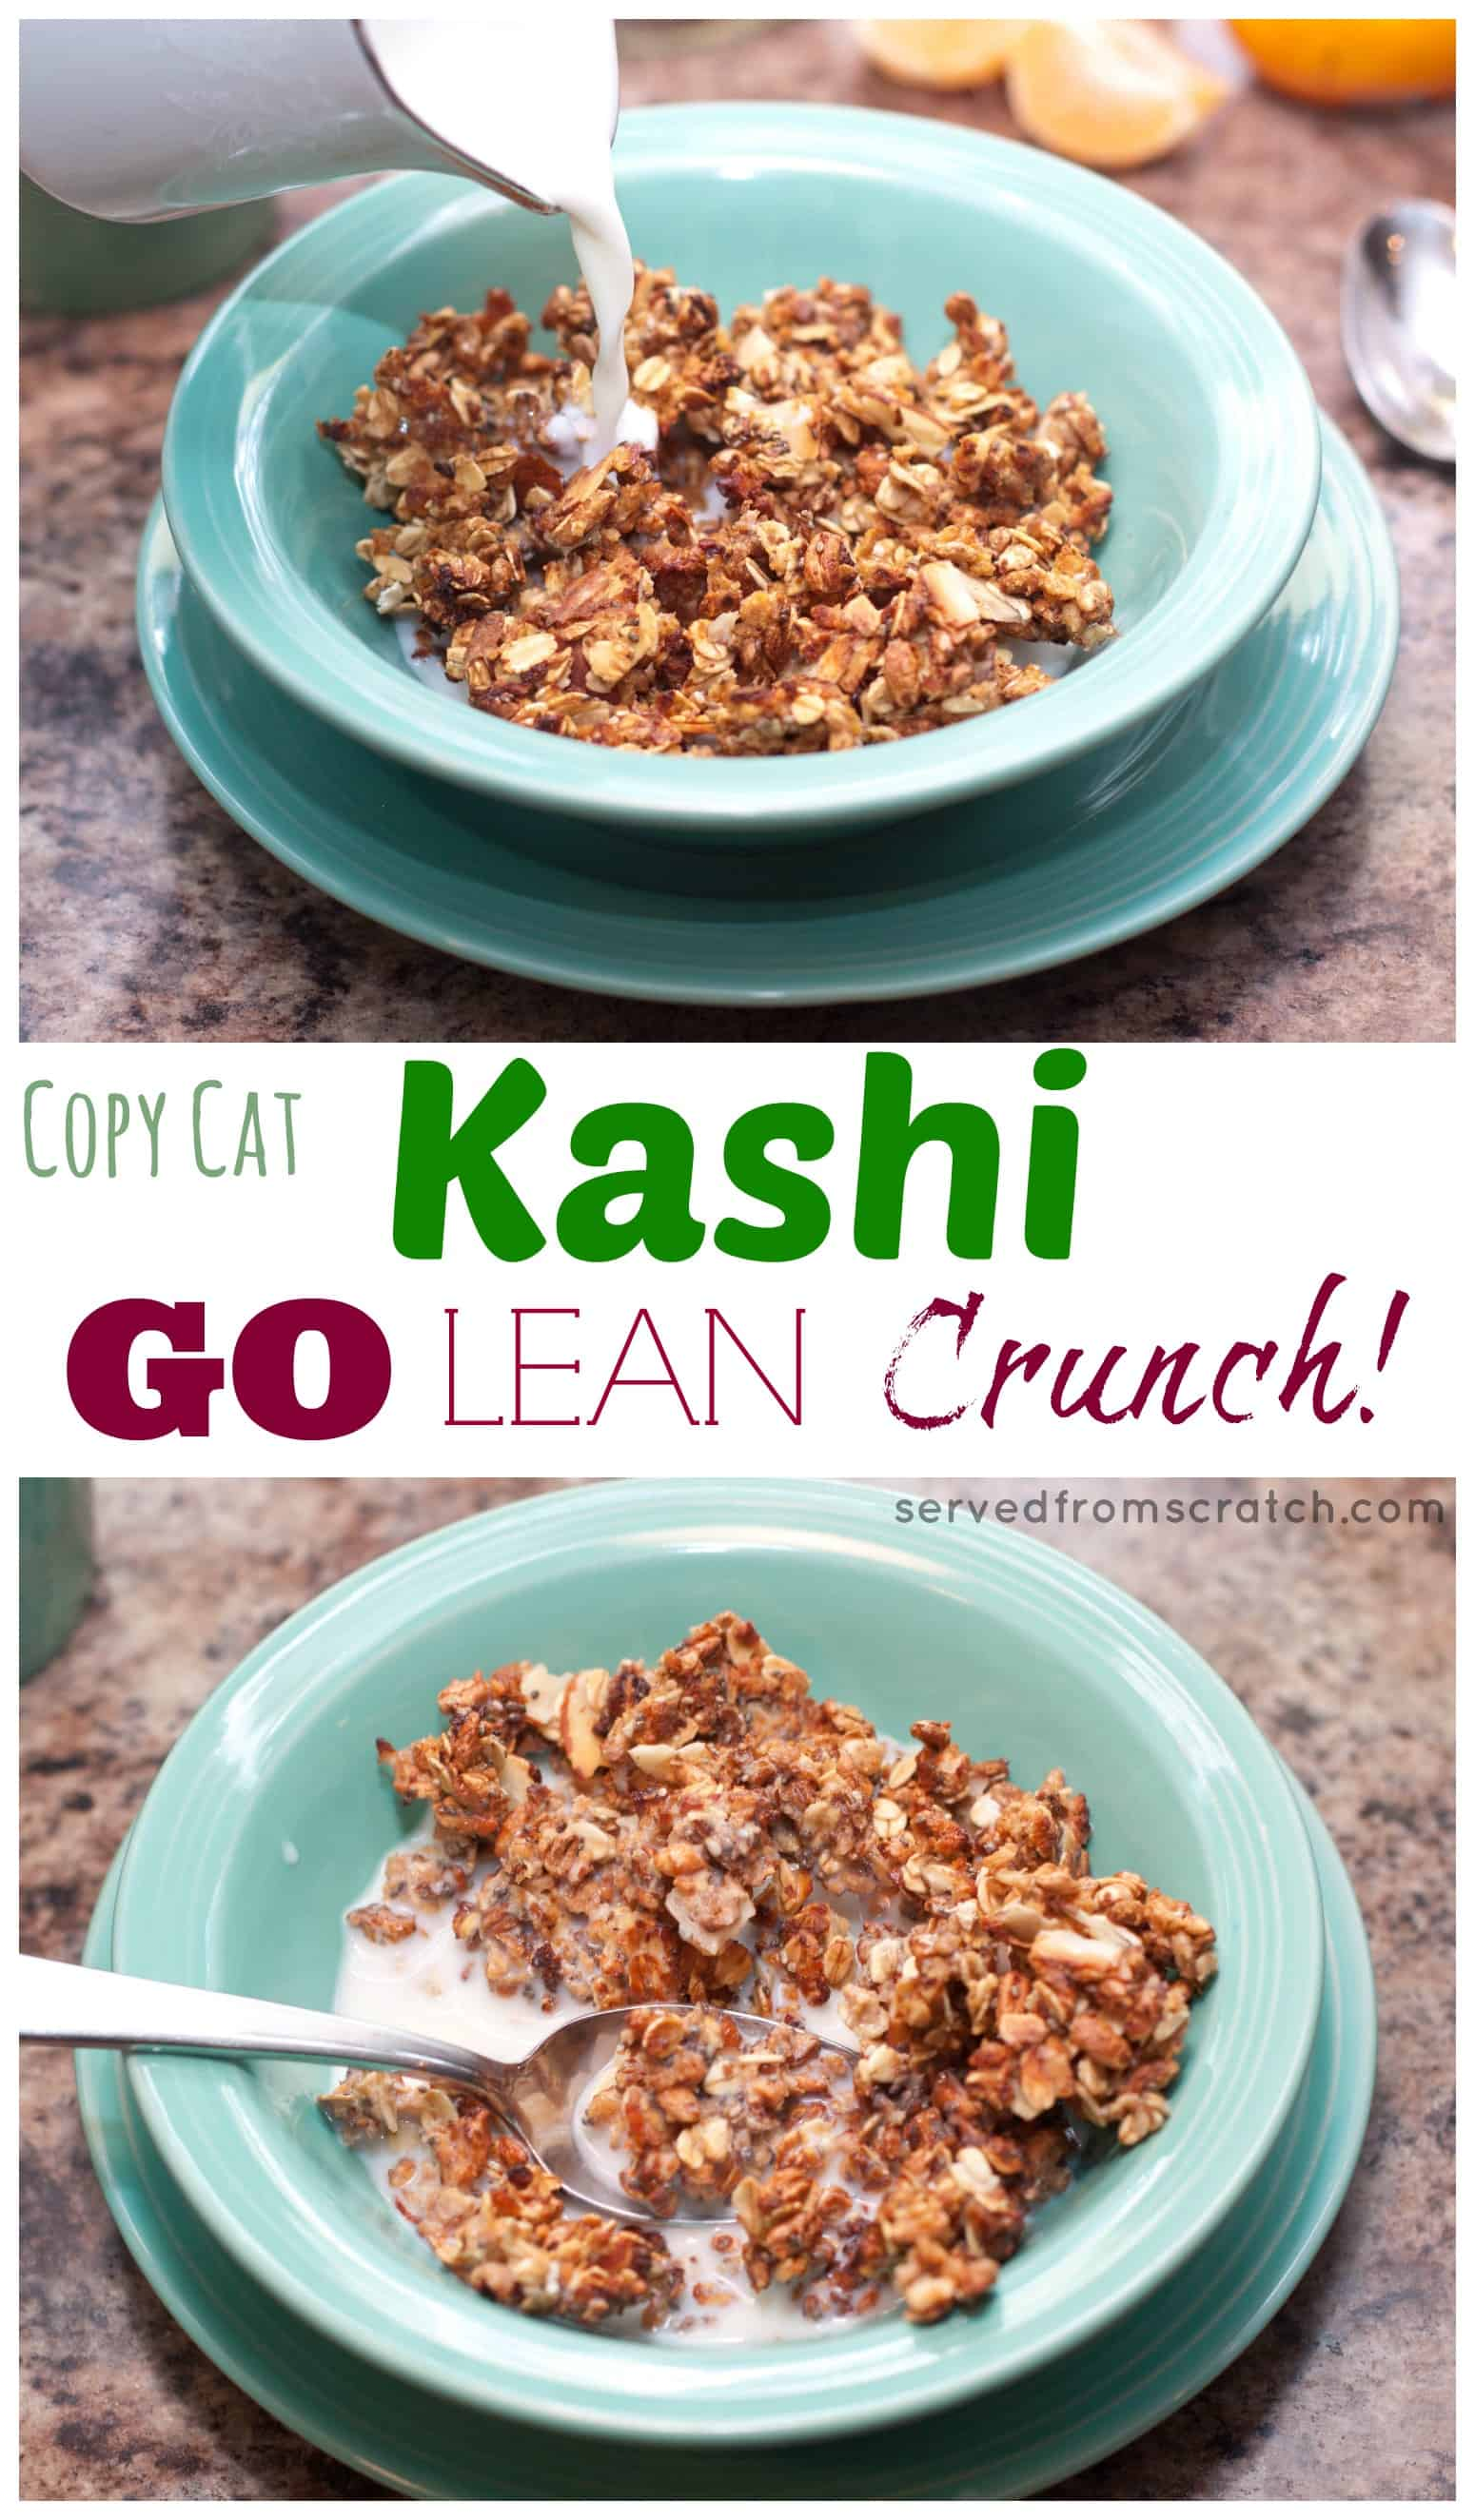 Copycat kashi go lean crunch cereal served from scratch no need to buy your favorite whole grain healthy cereal you can make it at ccuart Image collections